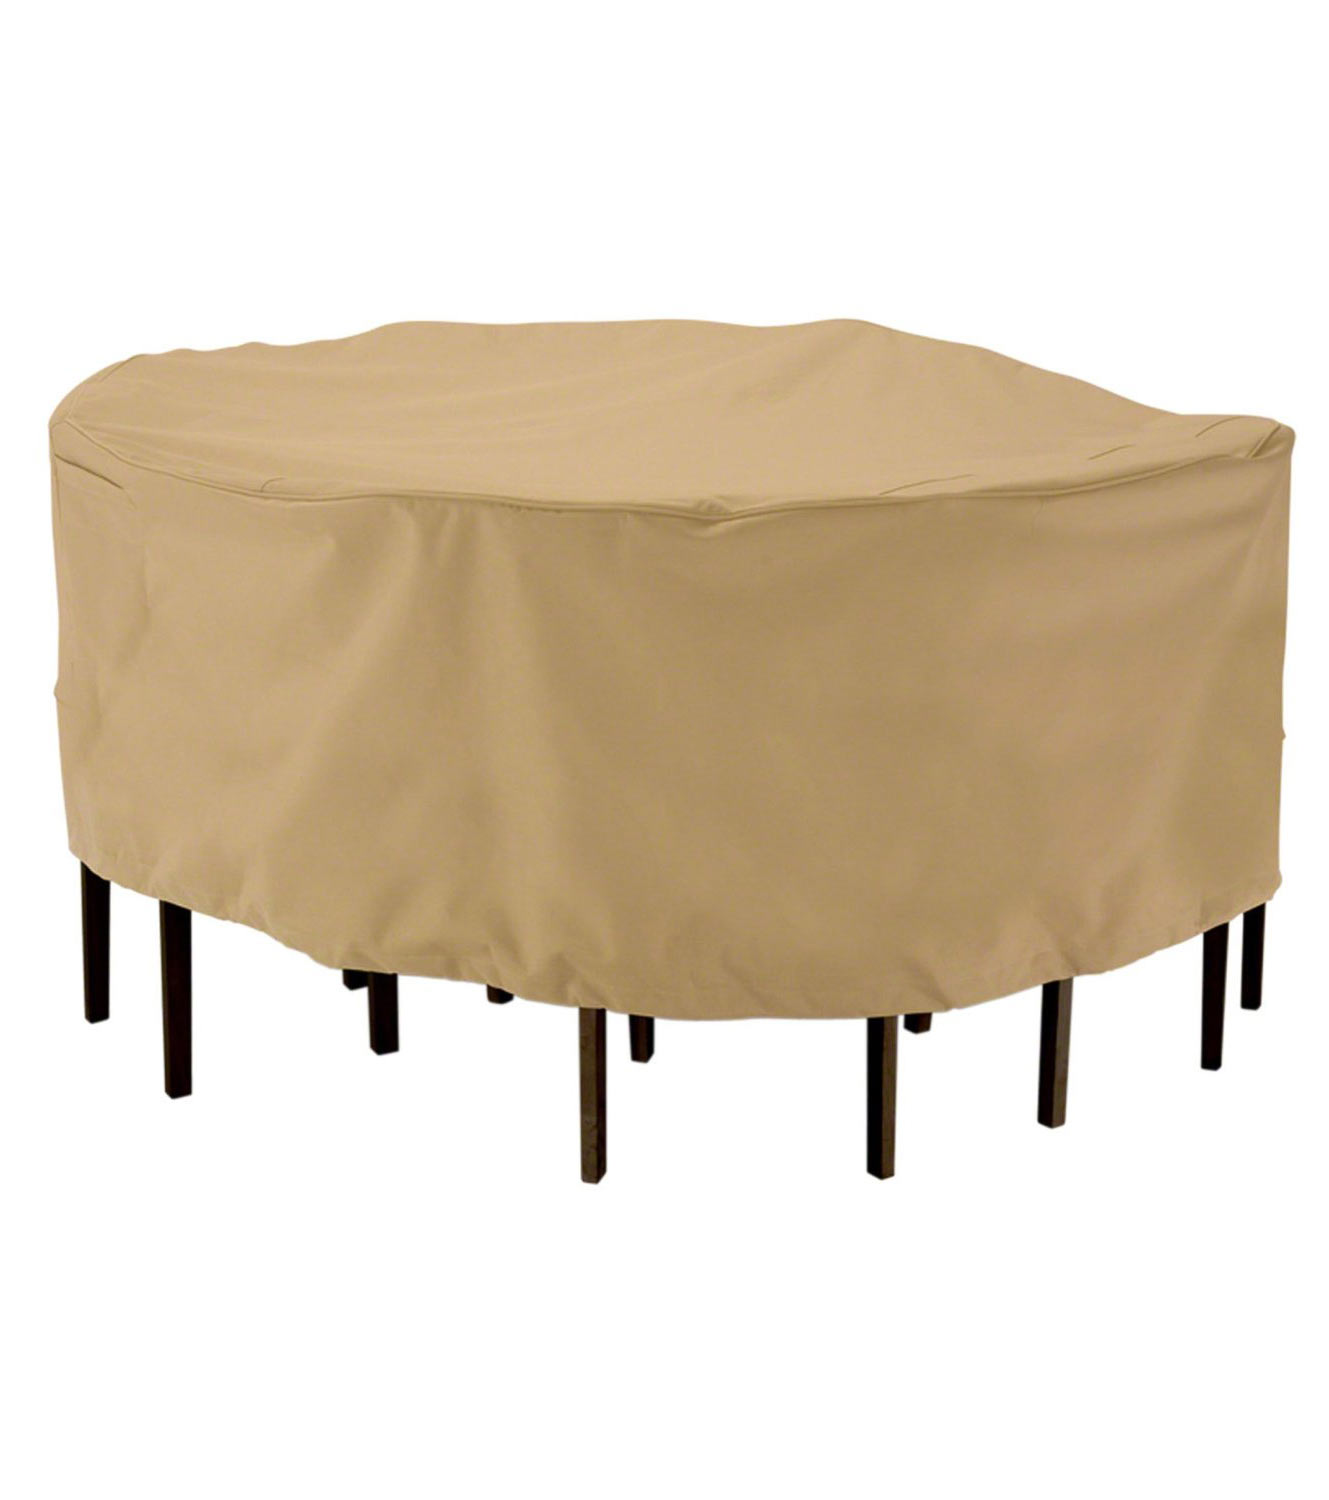 Round Patio Chair Patio Furniture Cover Round Table In Patio Furniture Covers